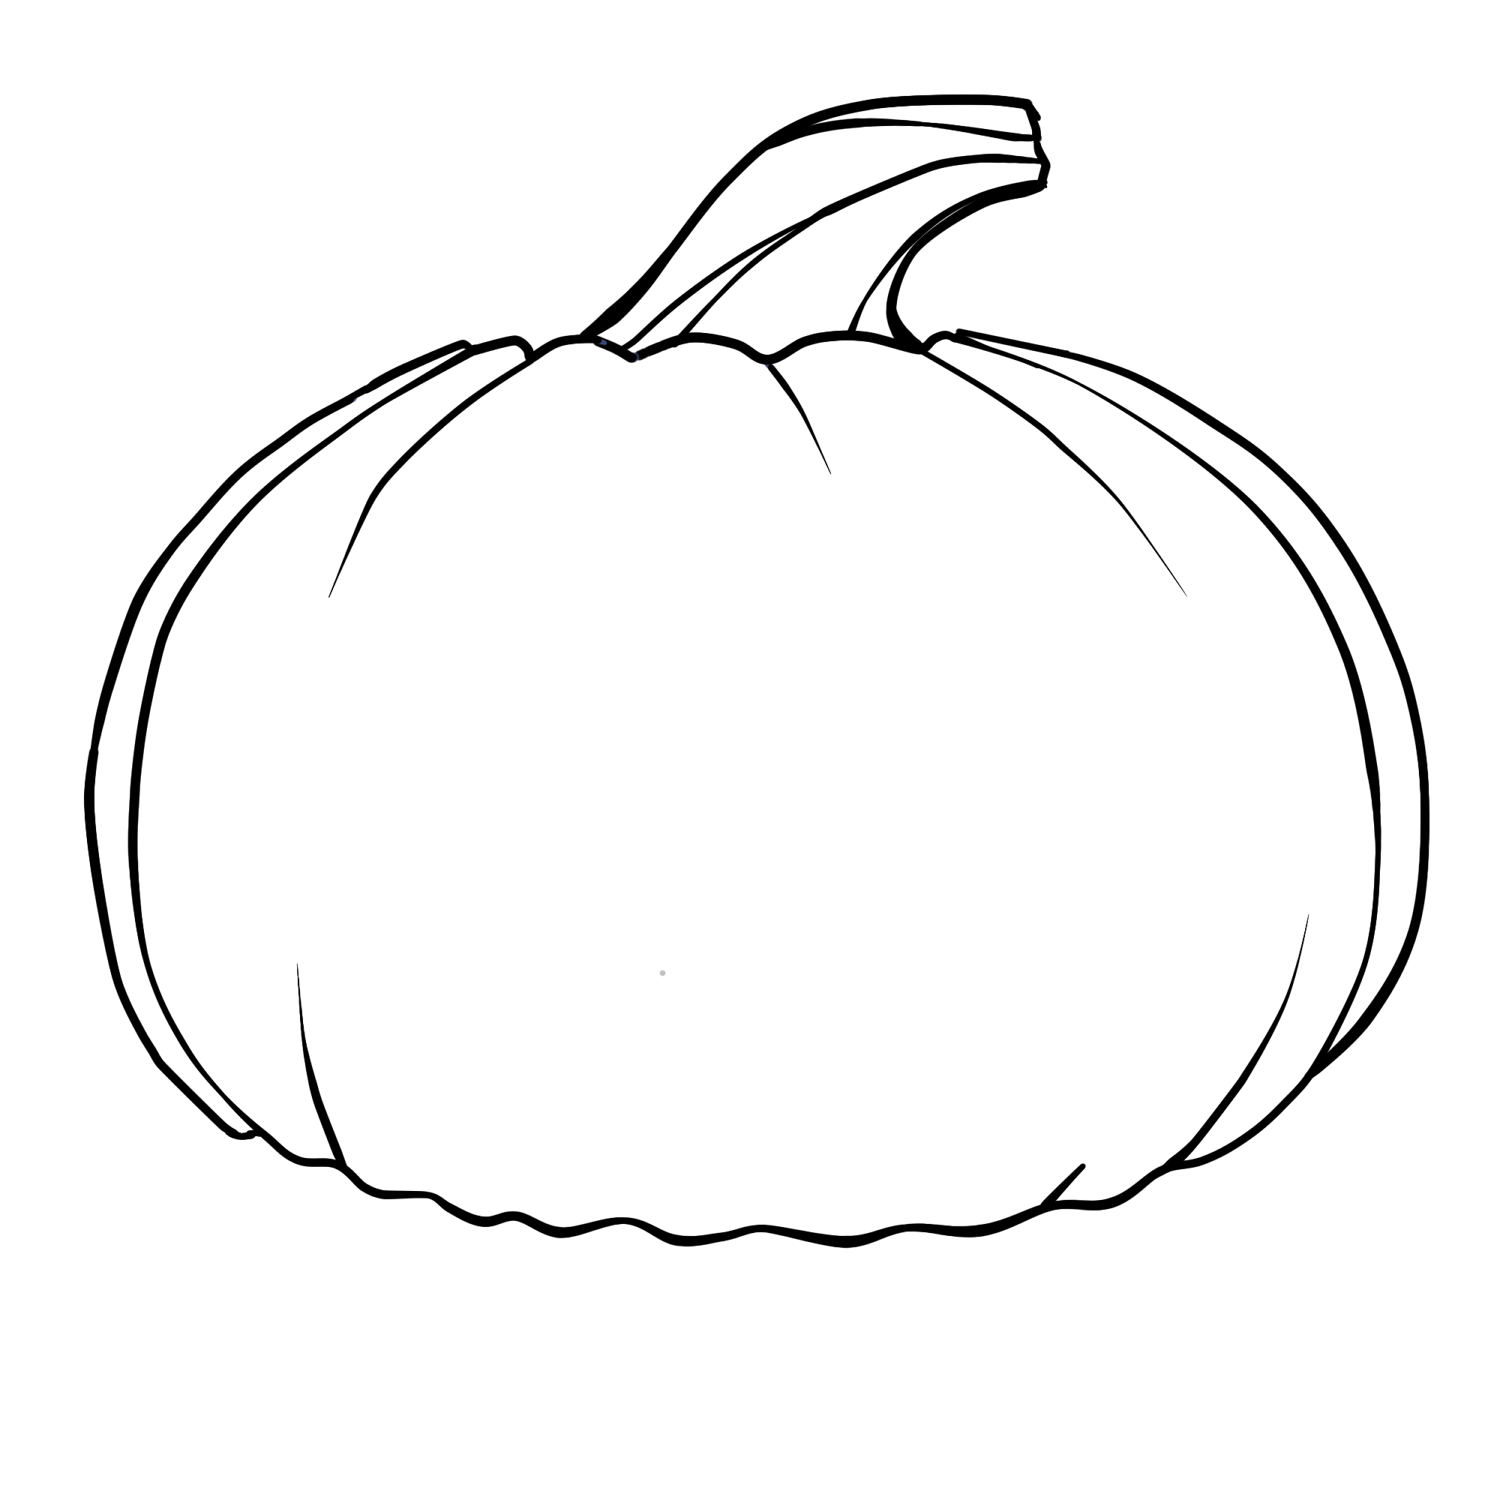 images of pumpkins to color simple pumpkin coloring page free printable coloring pages color to images of pumpkins